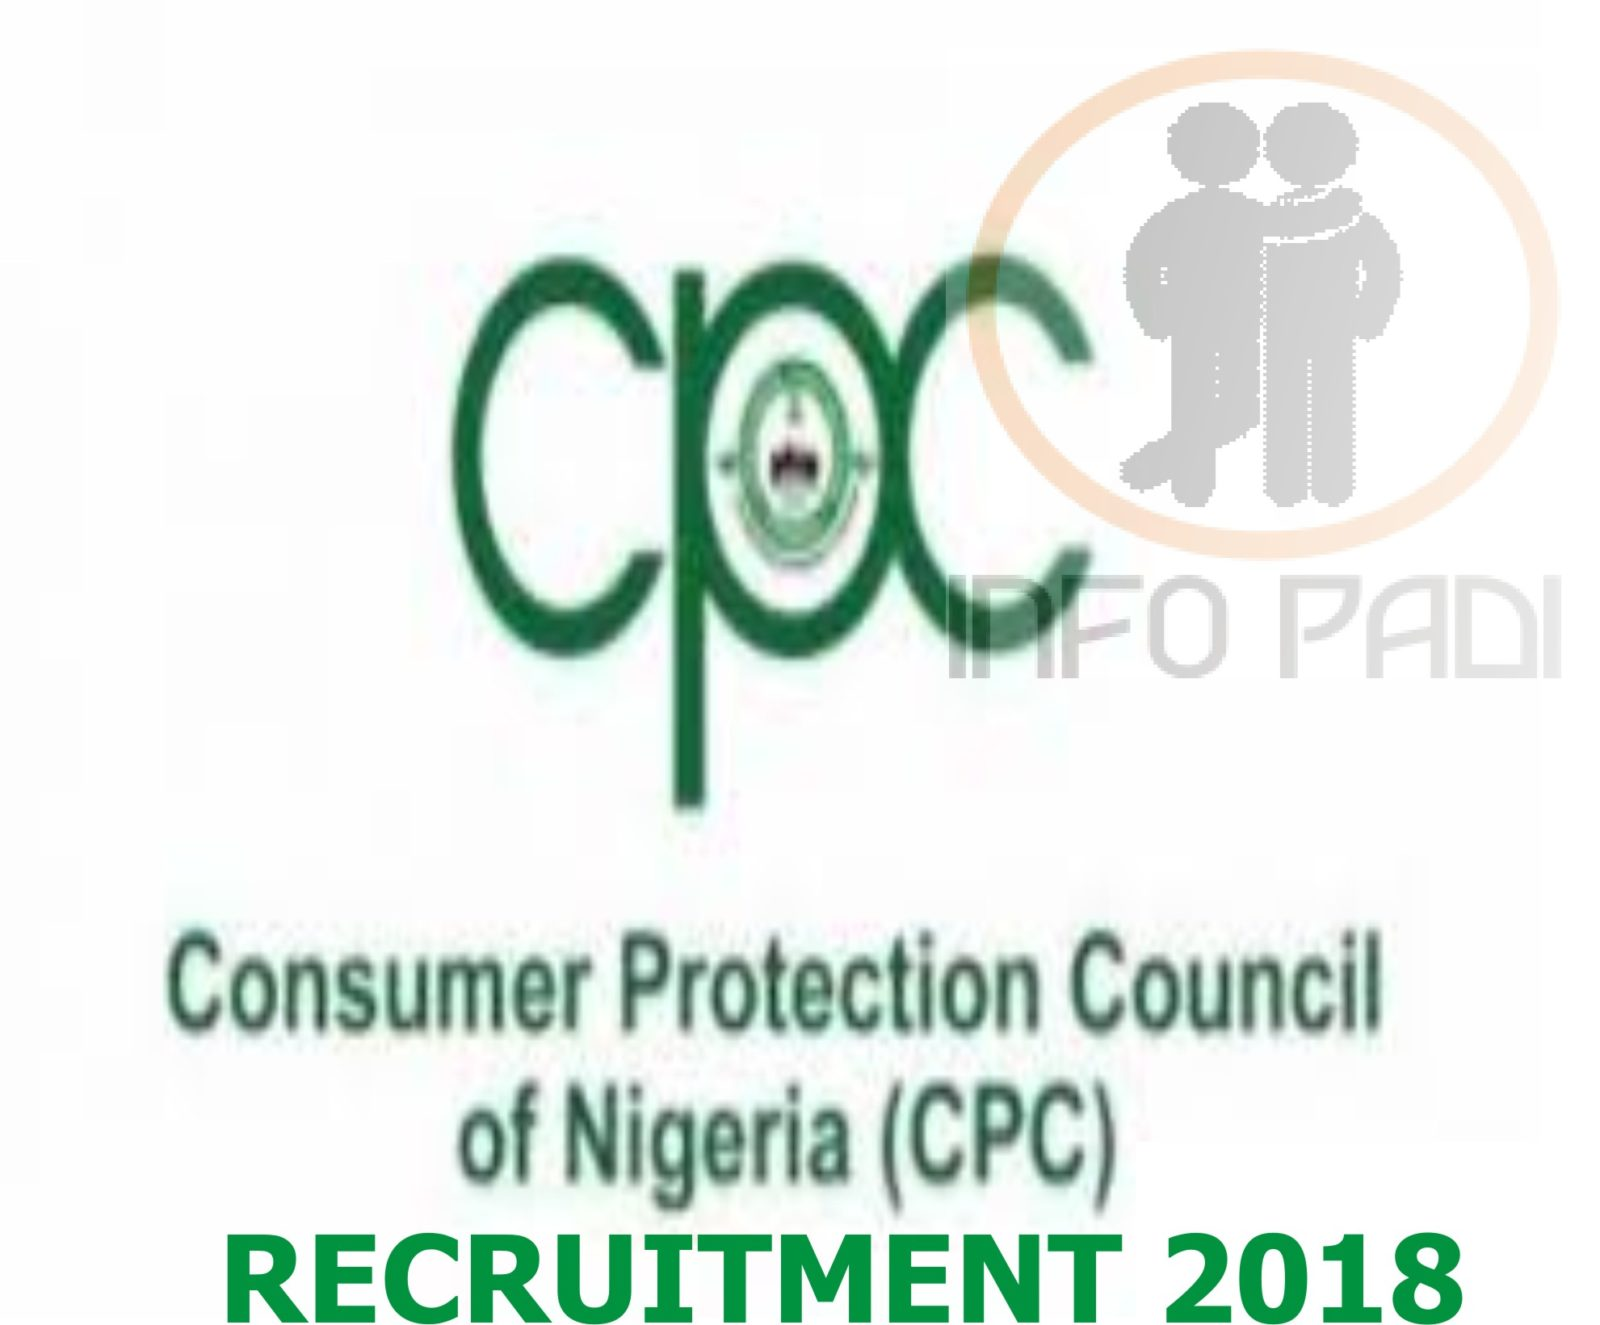 Consumer Protection Council (CPC) Recruitment 2018/2019 Form –www.cpc.gov.ng